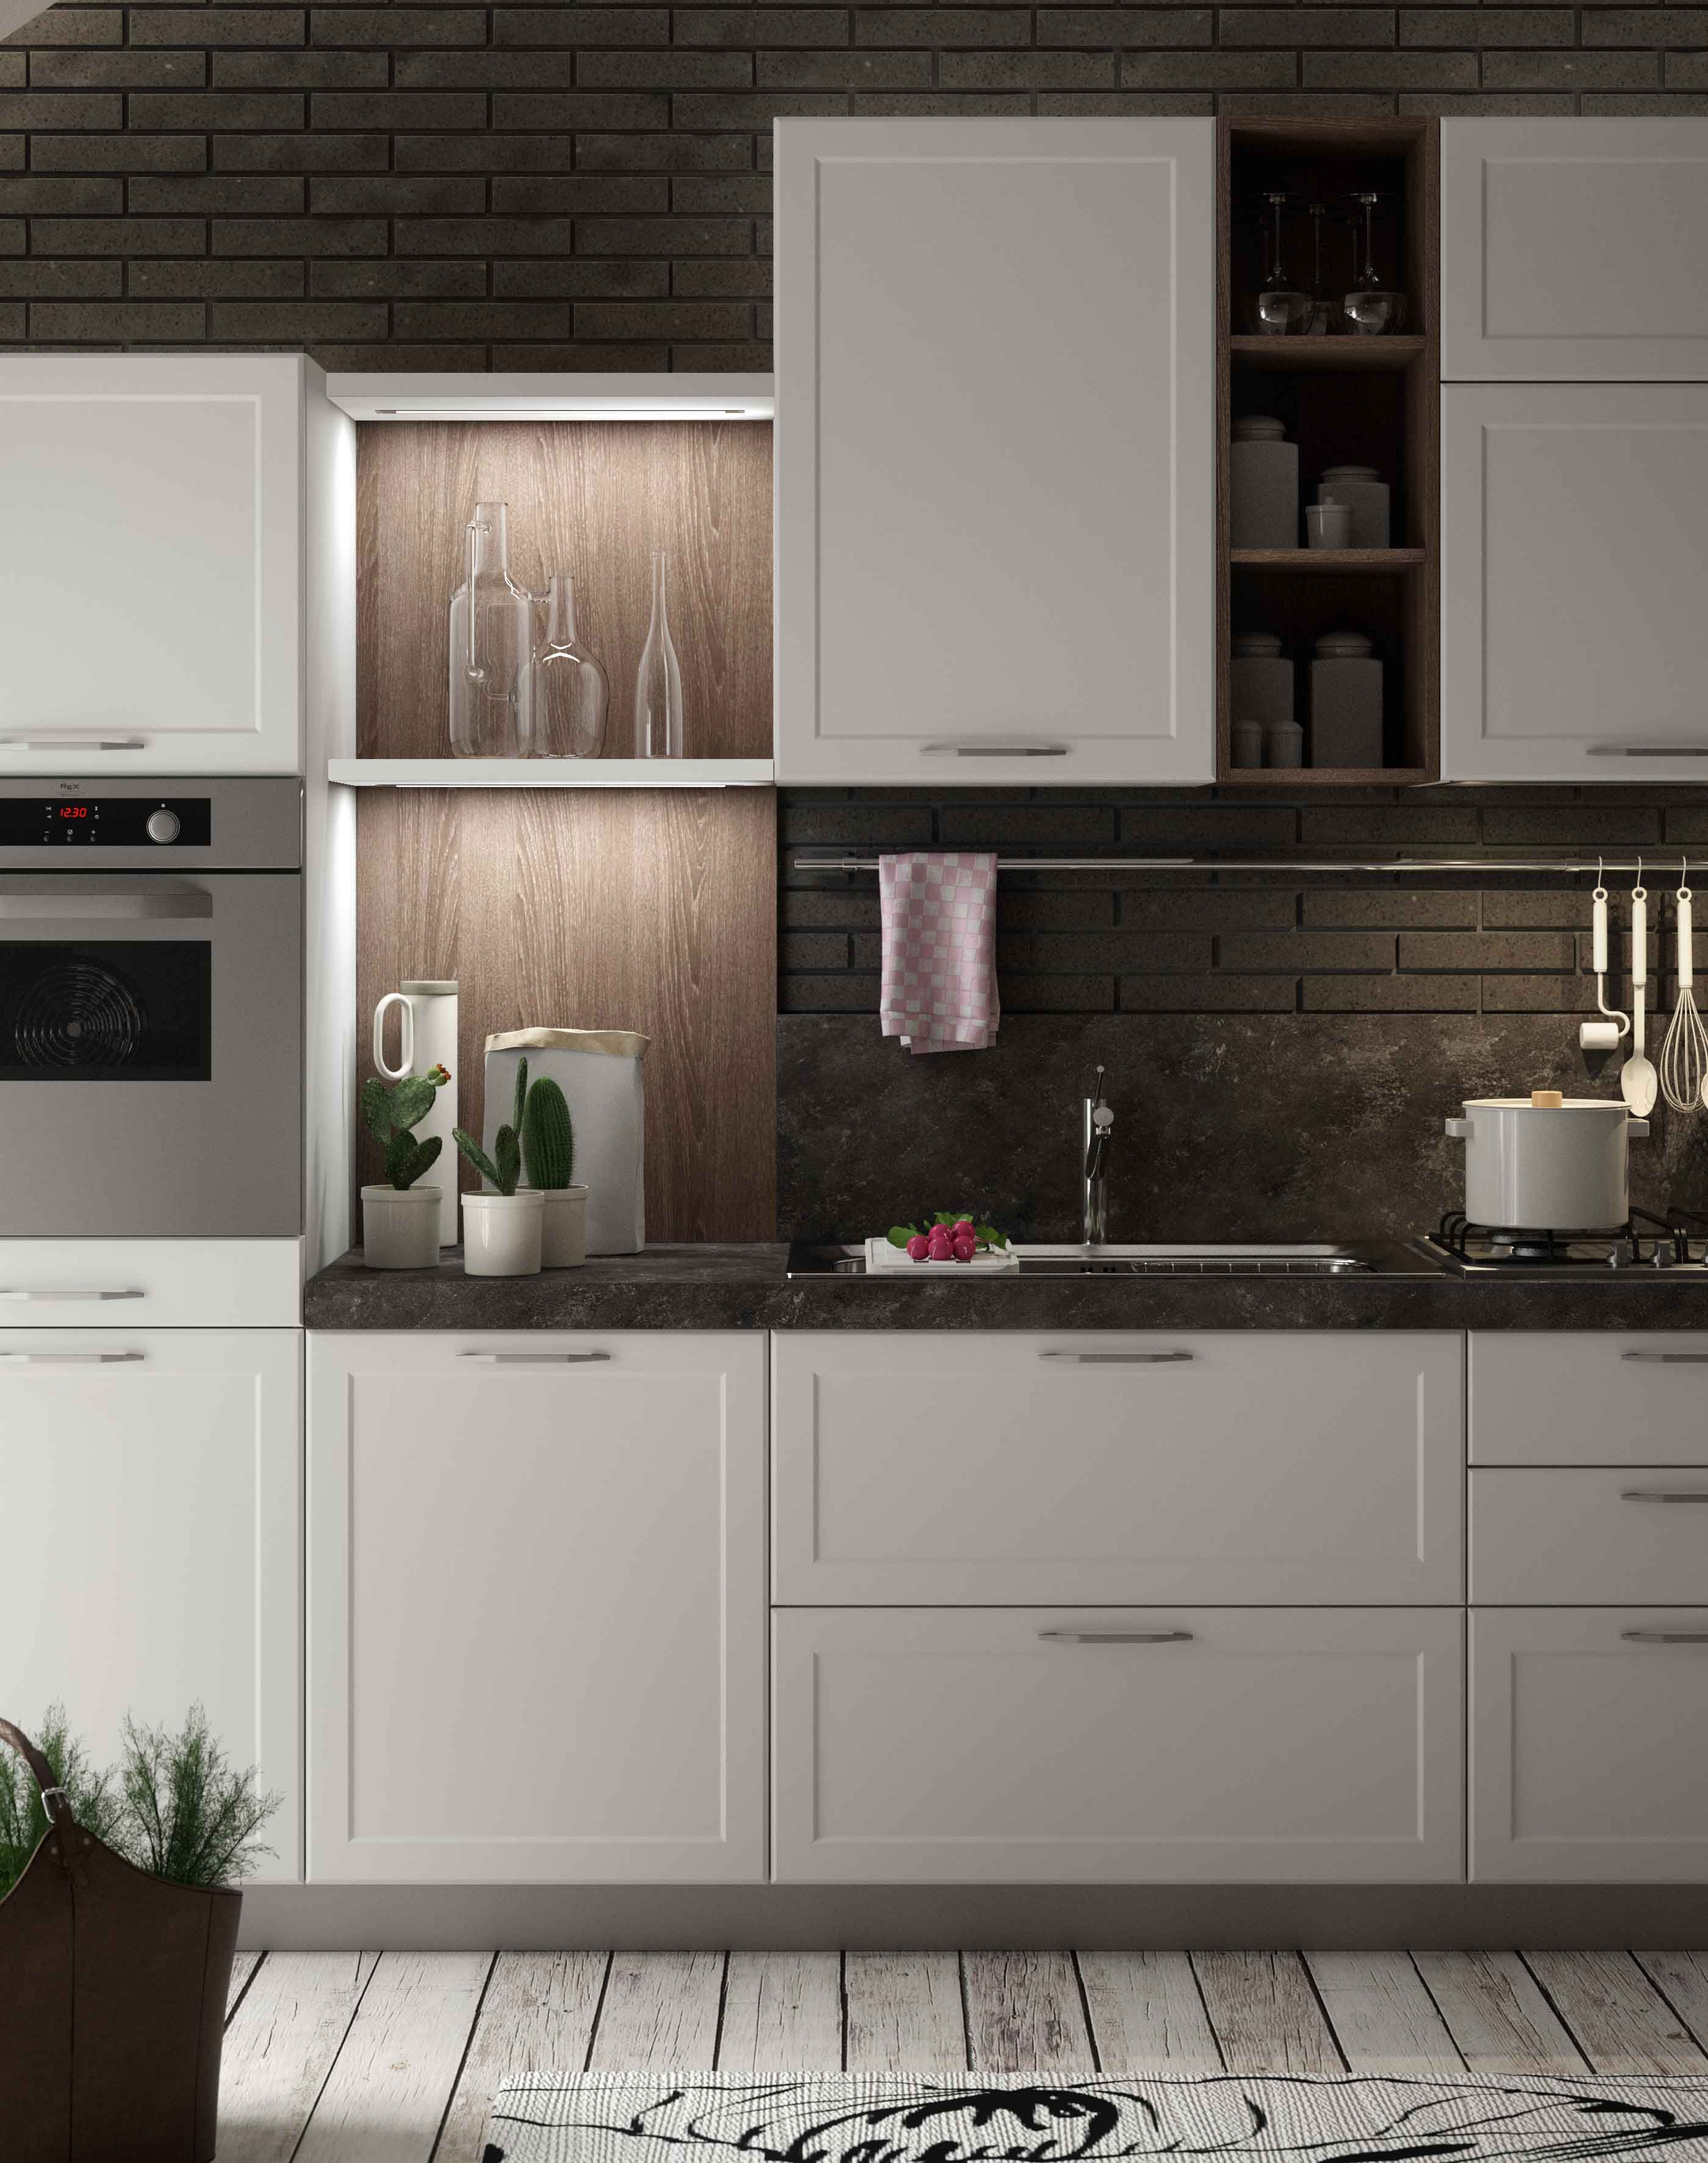 Contempo with shaker door in reflect white and stromboli laminate